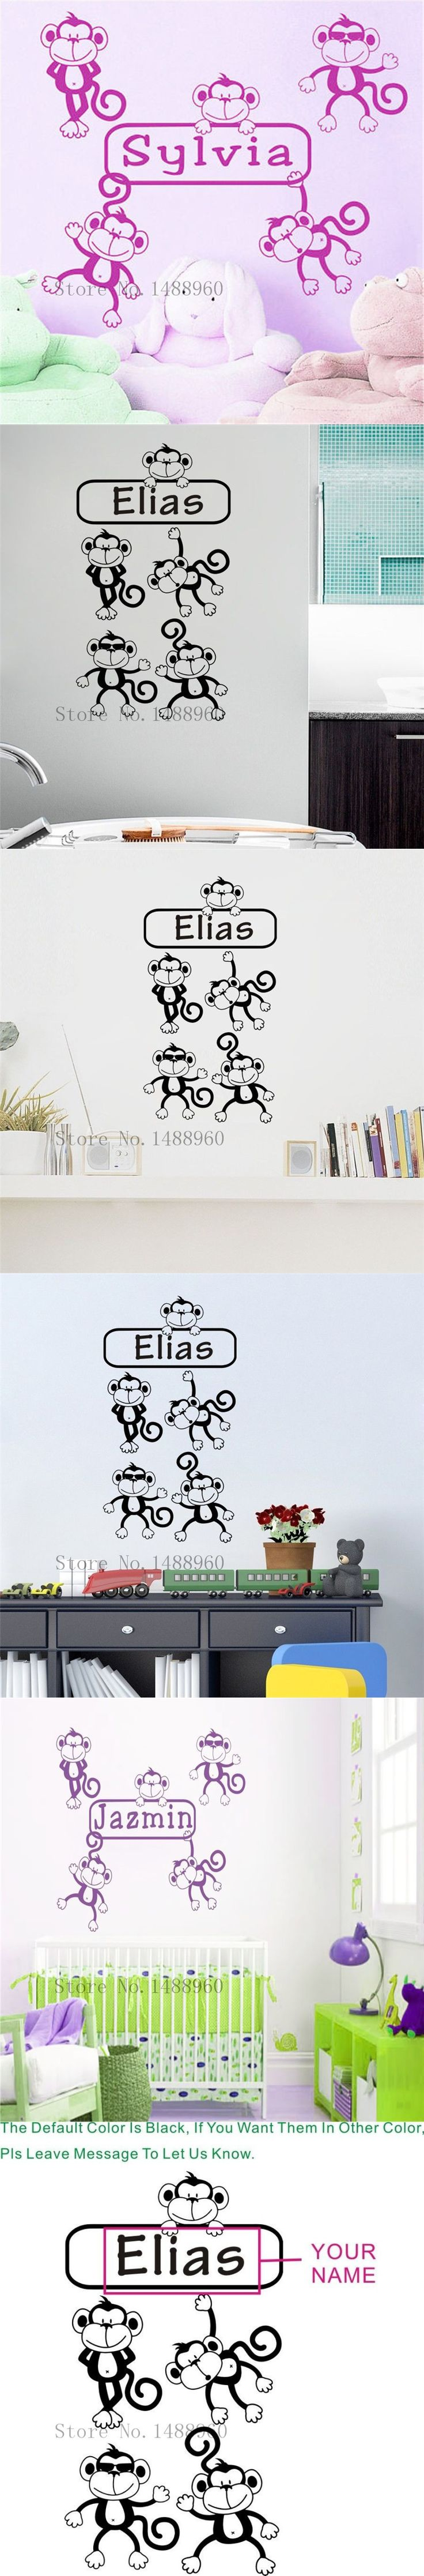 LH449 wall decal Cute monkey Bedroom DIY PVC Custom English name Creative for Kids room wall stickers home decor $9.99